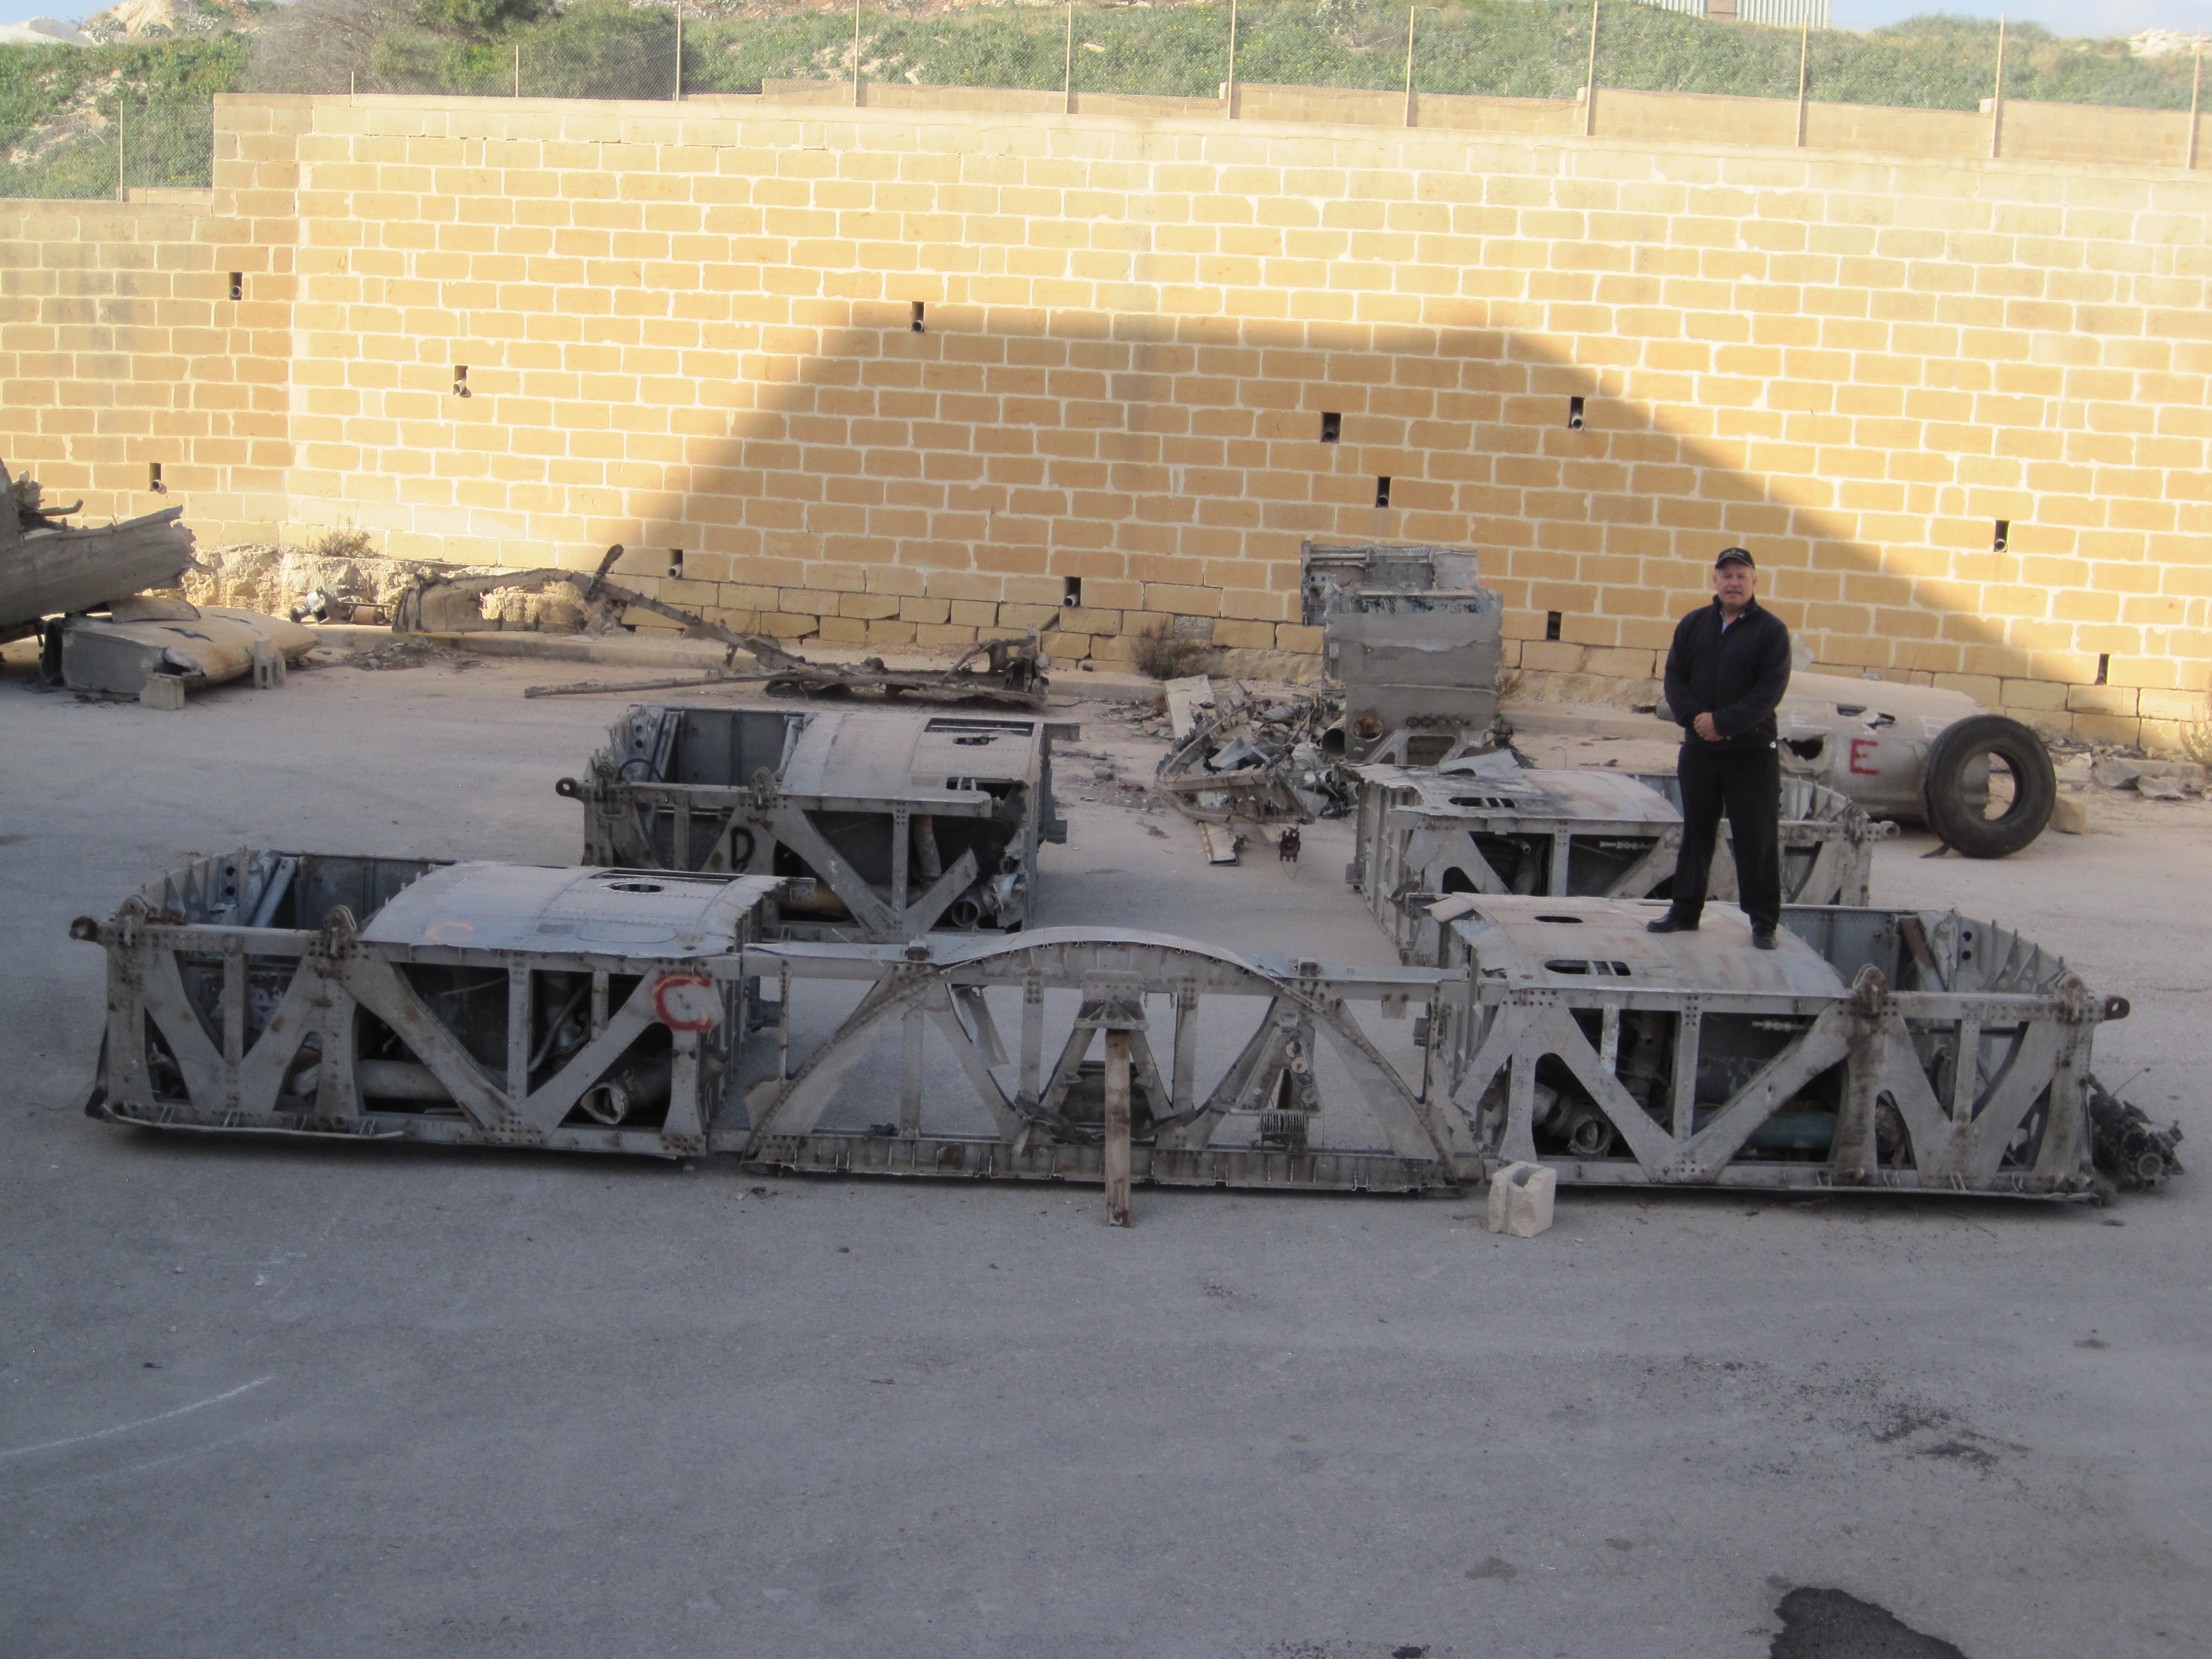 Karl standing on the center sections awaiting shipment to Canada after recovery from the Malta scrapyard